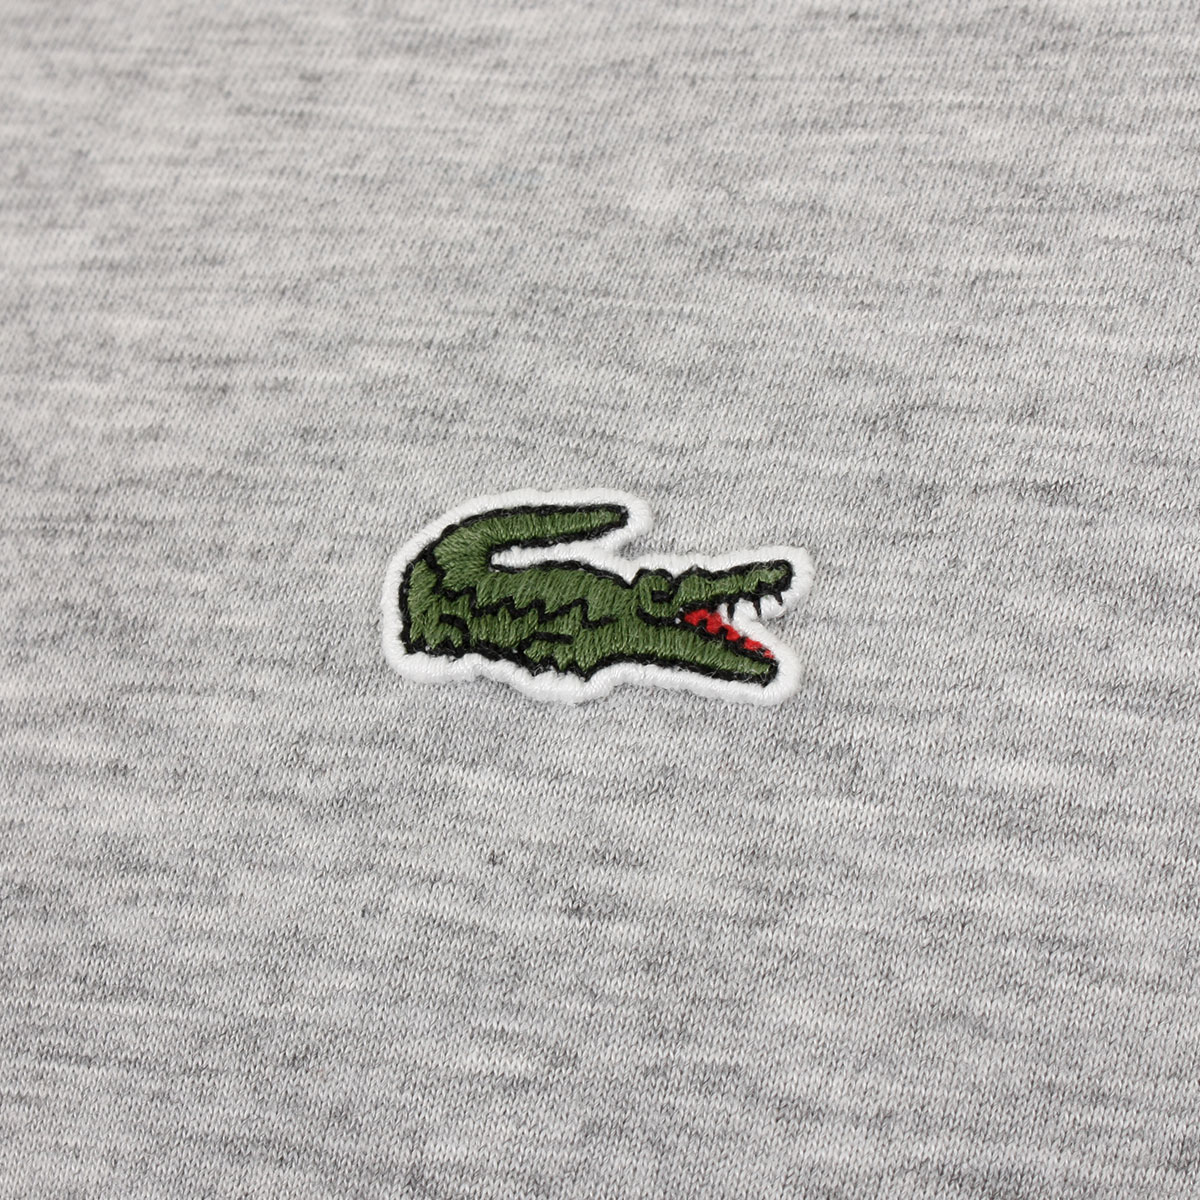 Lacoste-Mens-2019-LS-Crew-Neck-Cotton-T-Shirt-TH6712-Long-Sleeve-Tee-27-OFF-RRP thumbnail 12